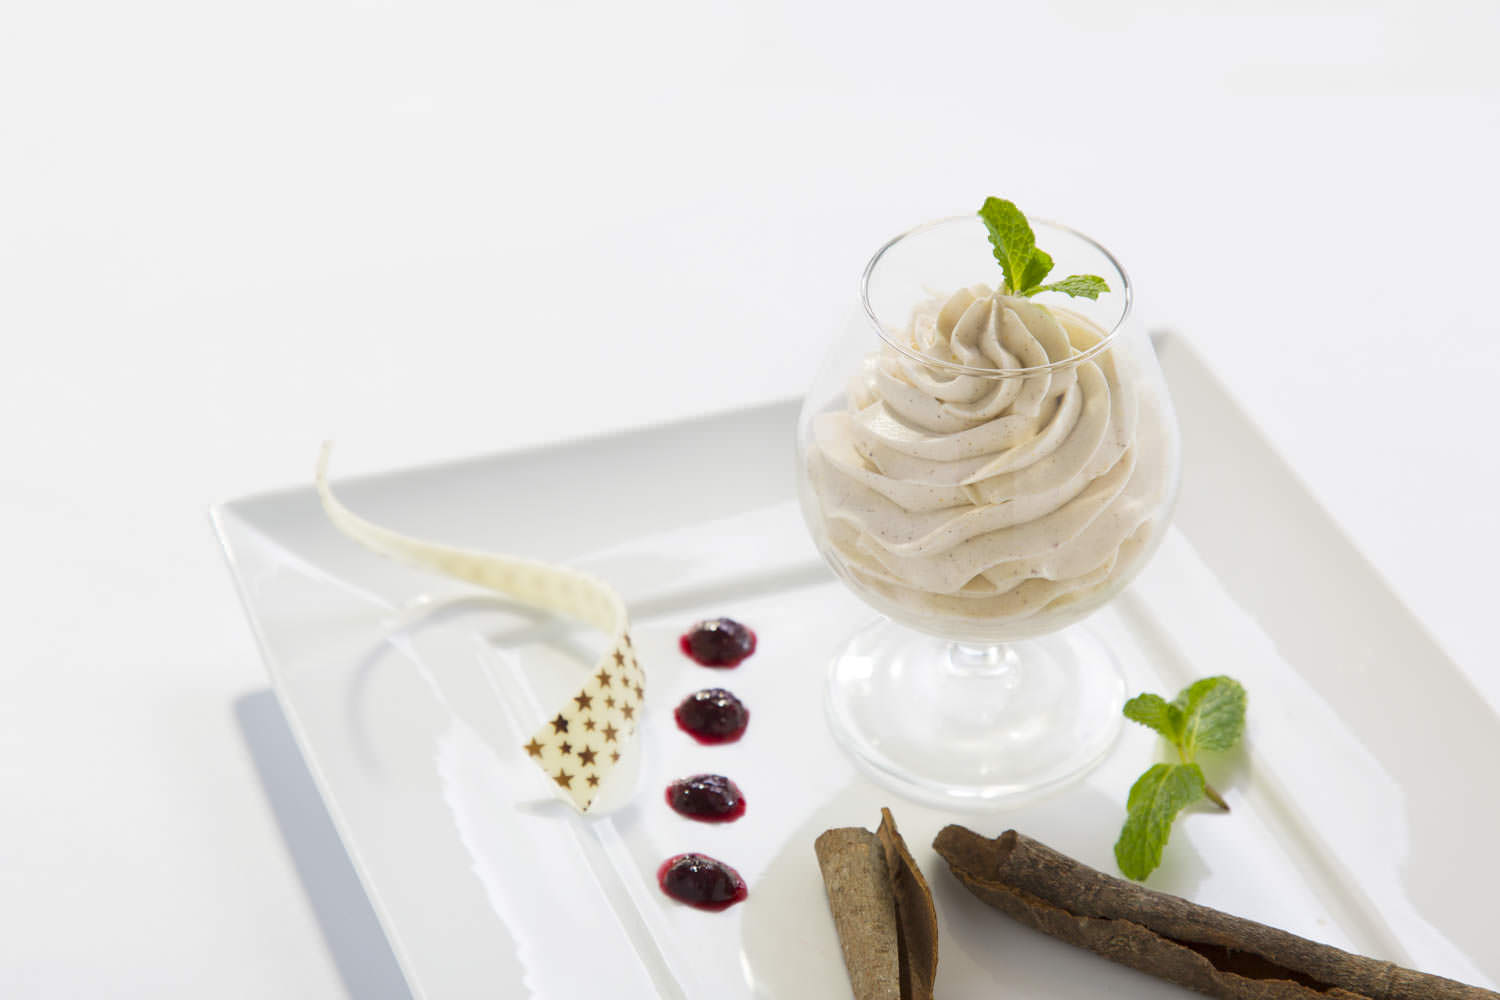 Star anise and cinnamon mousse with mulberry sauce in Hilton Opera Hanoi | Southeast Asia food photographer Francis Roux